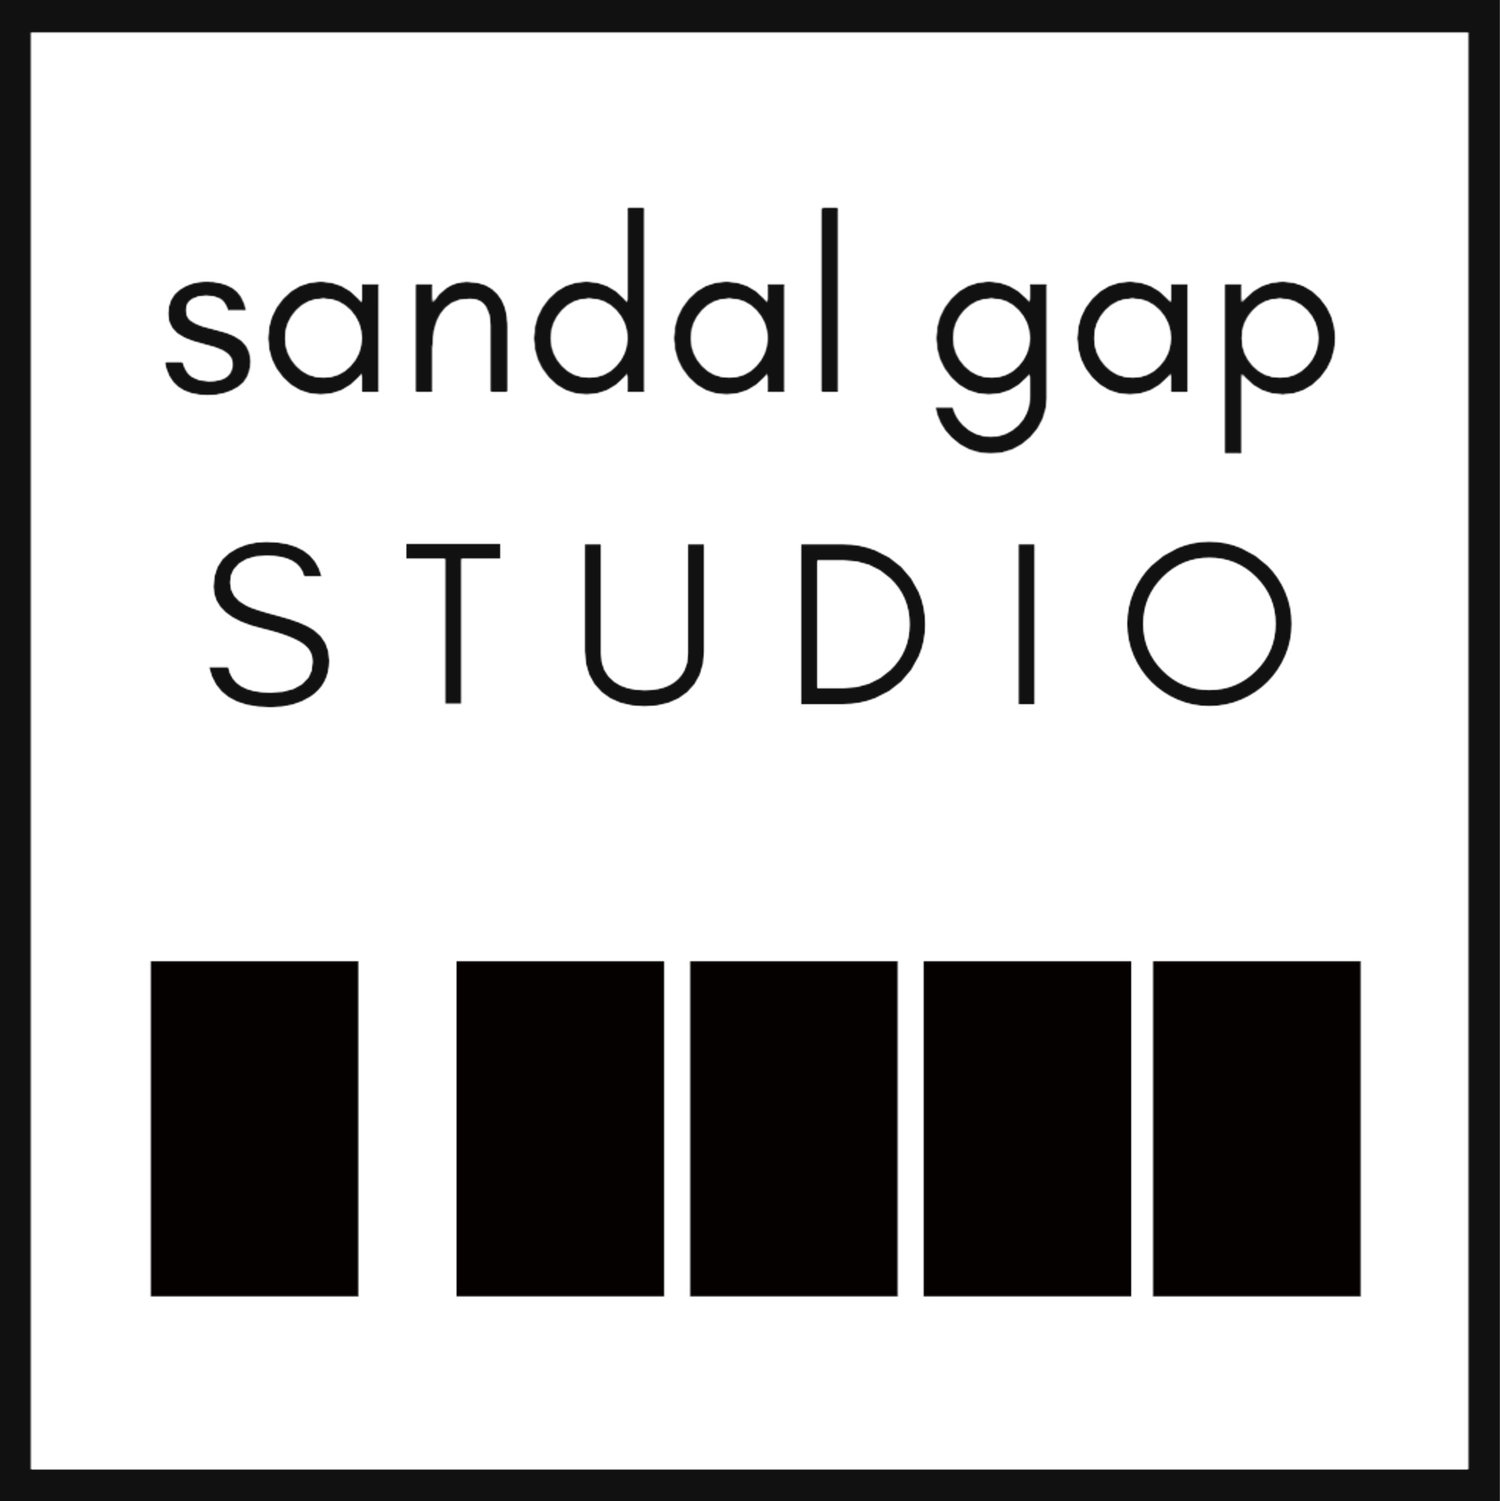 sandal gap STUDIO